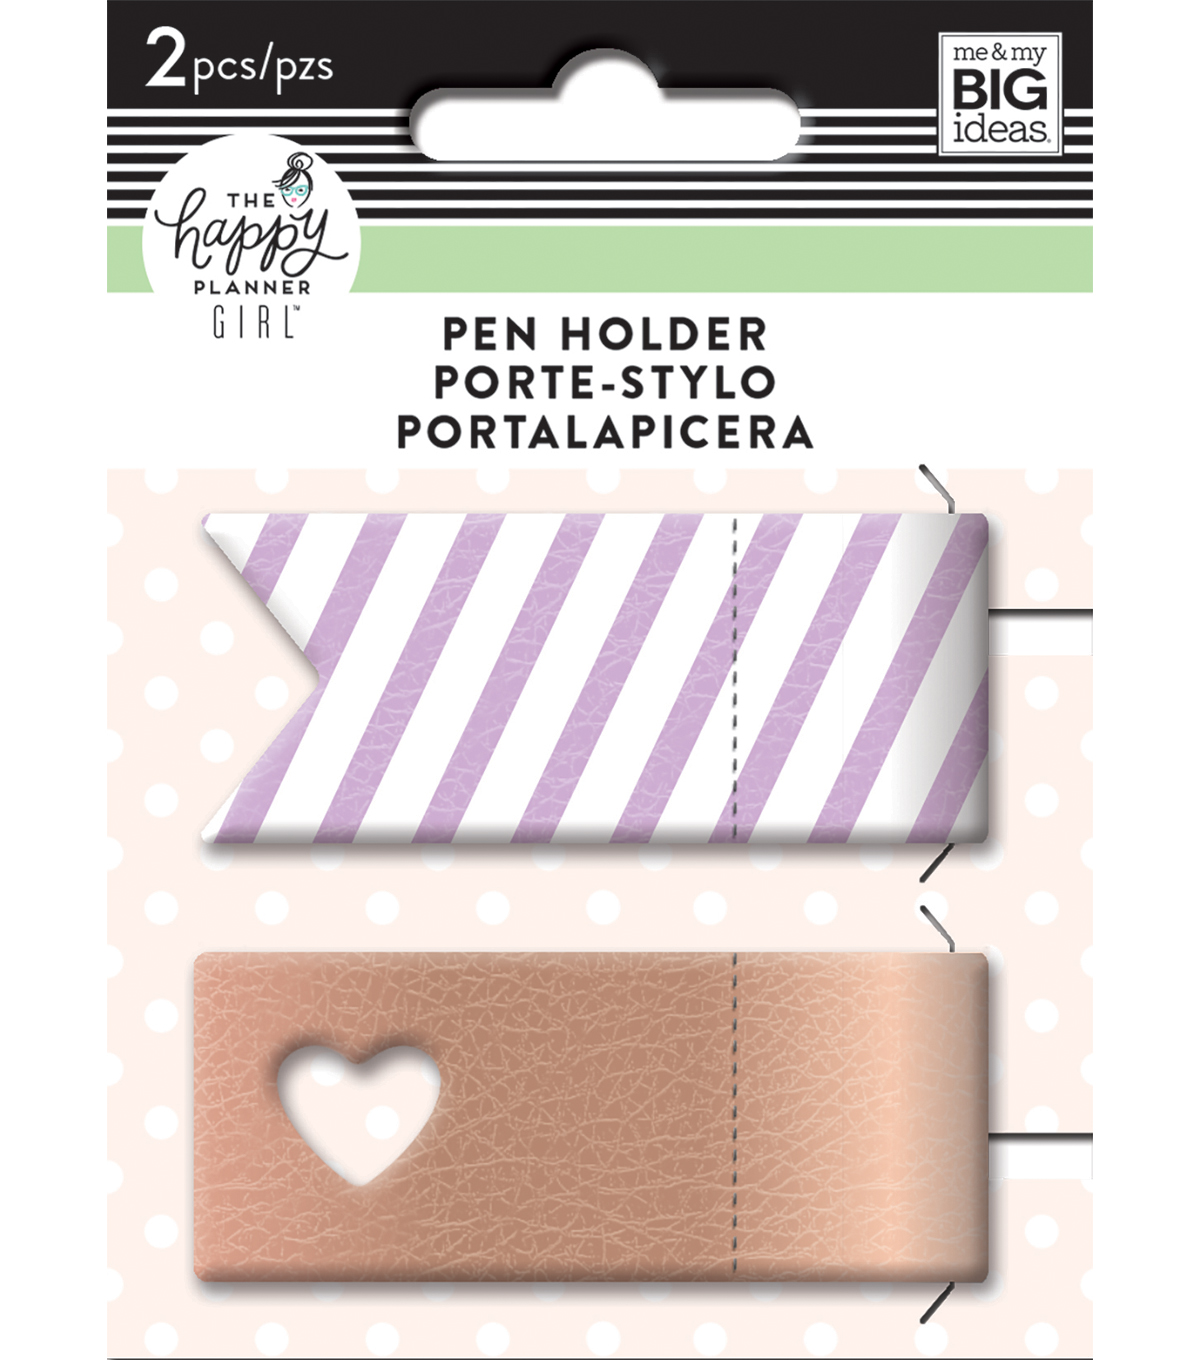 The Happy Planner Girl™ Daydreamer Collection Pen Holder